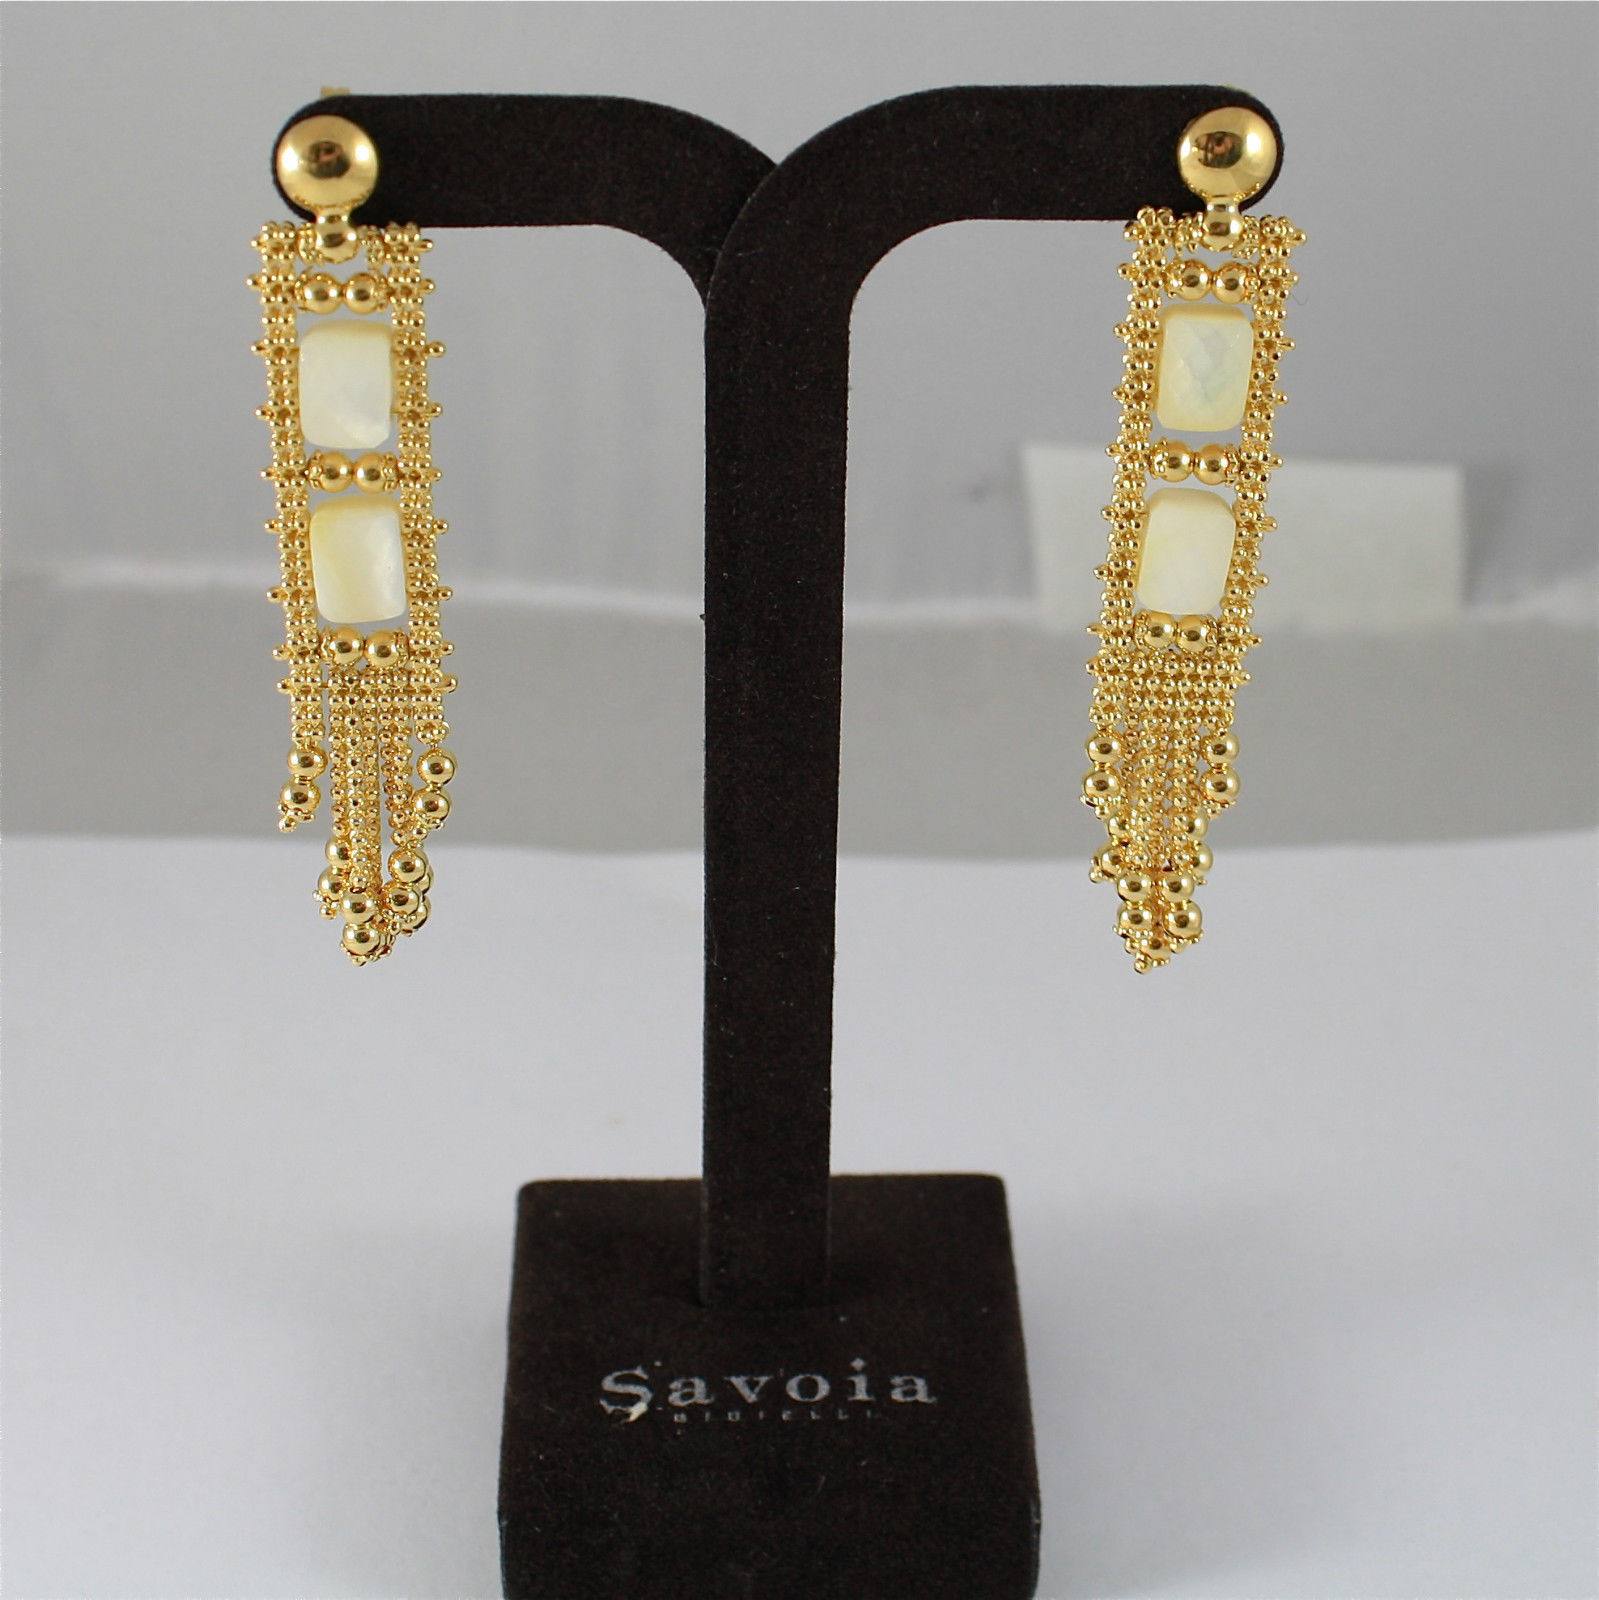 925 SILVER EARRINGS, GOLD PLATED, MOTHER OF PEARL, MADE IN ITALY BY SAVOIA